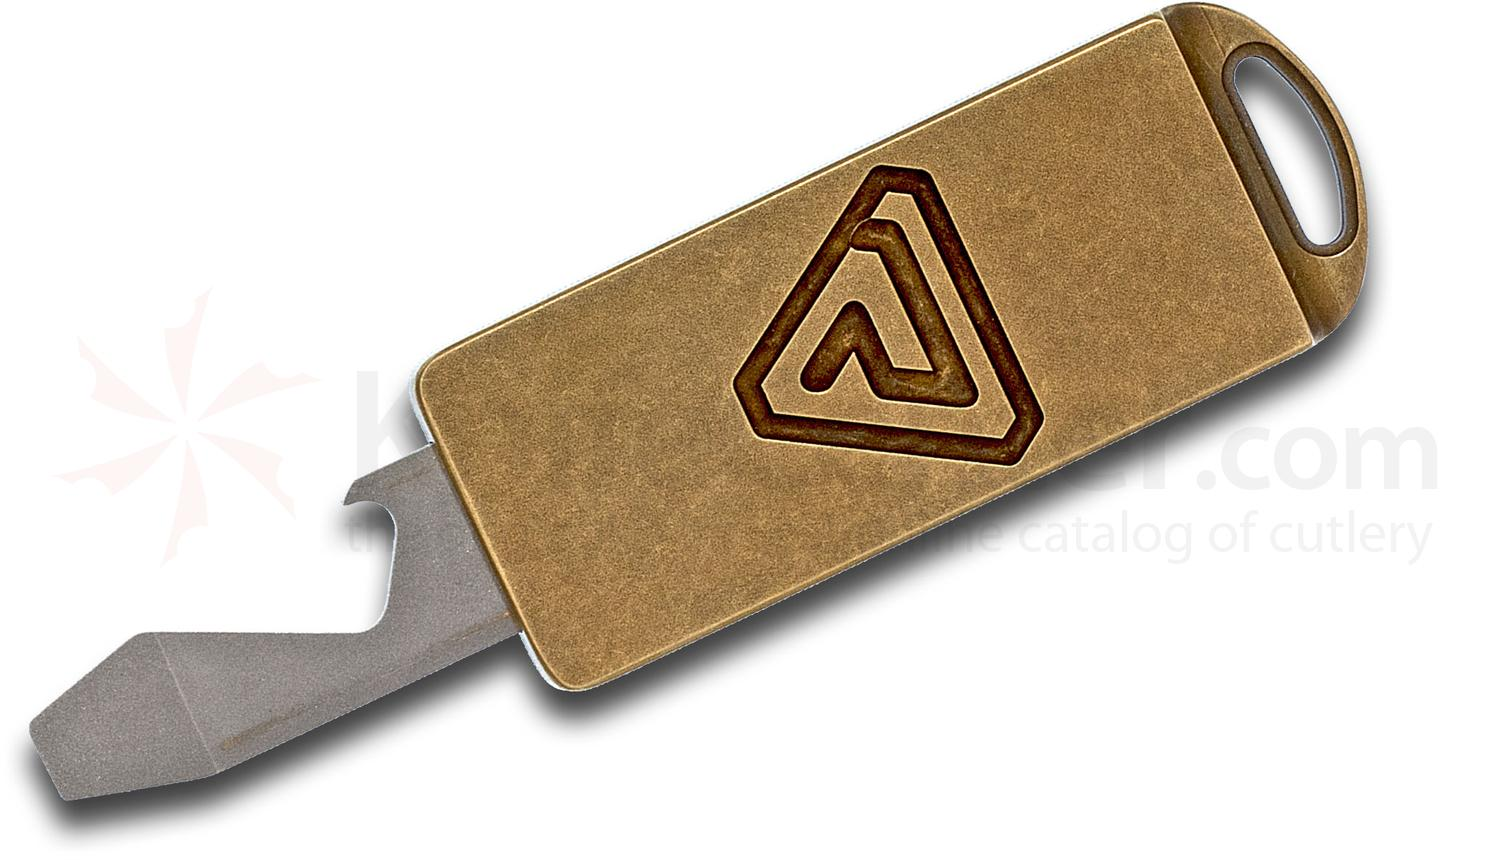 Richard Rogers Custom Brass SlideRR Bottle Opener/Screwdriver/Mini Pry Bar